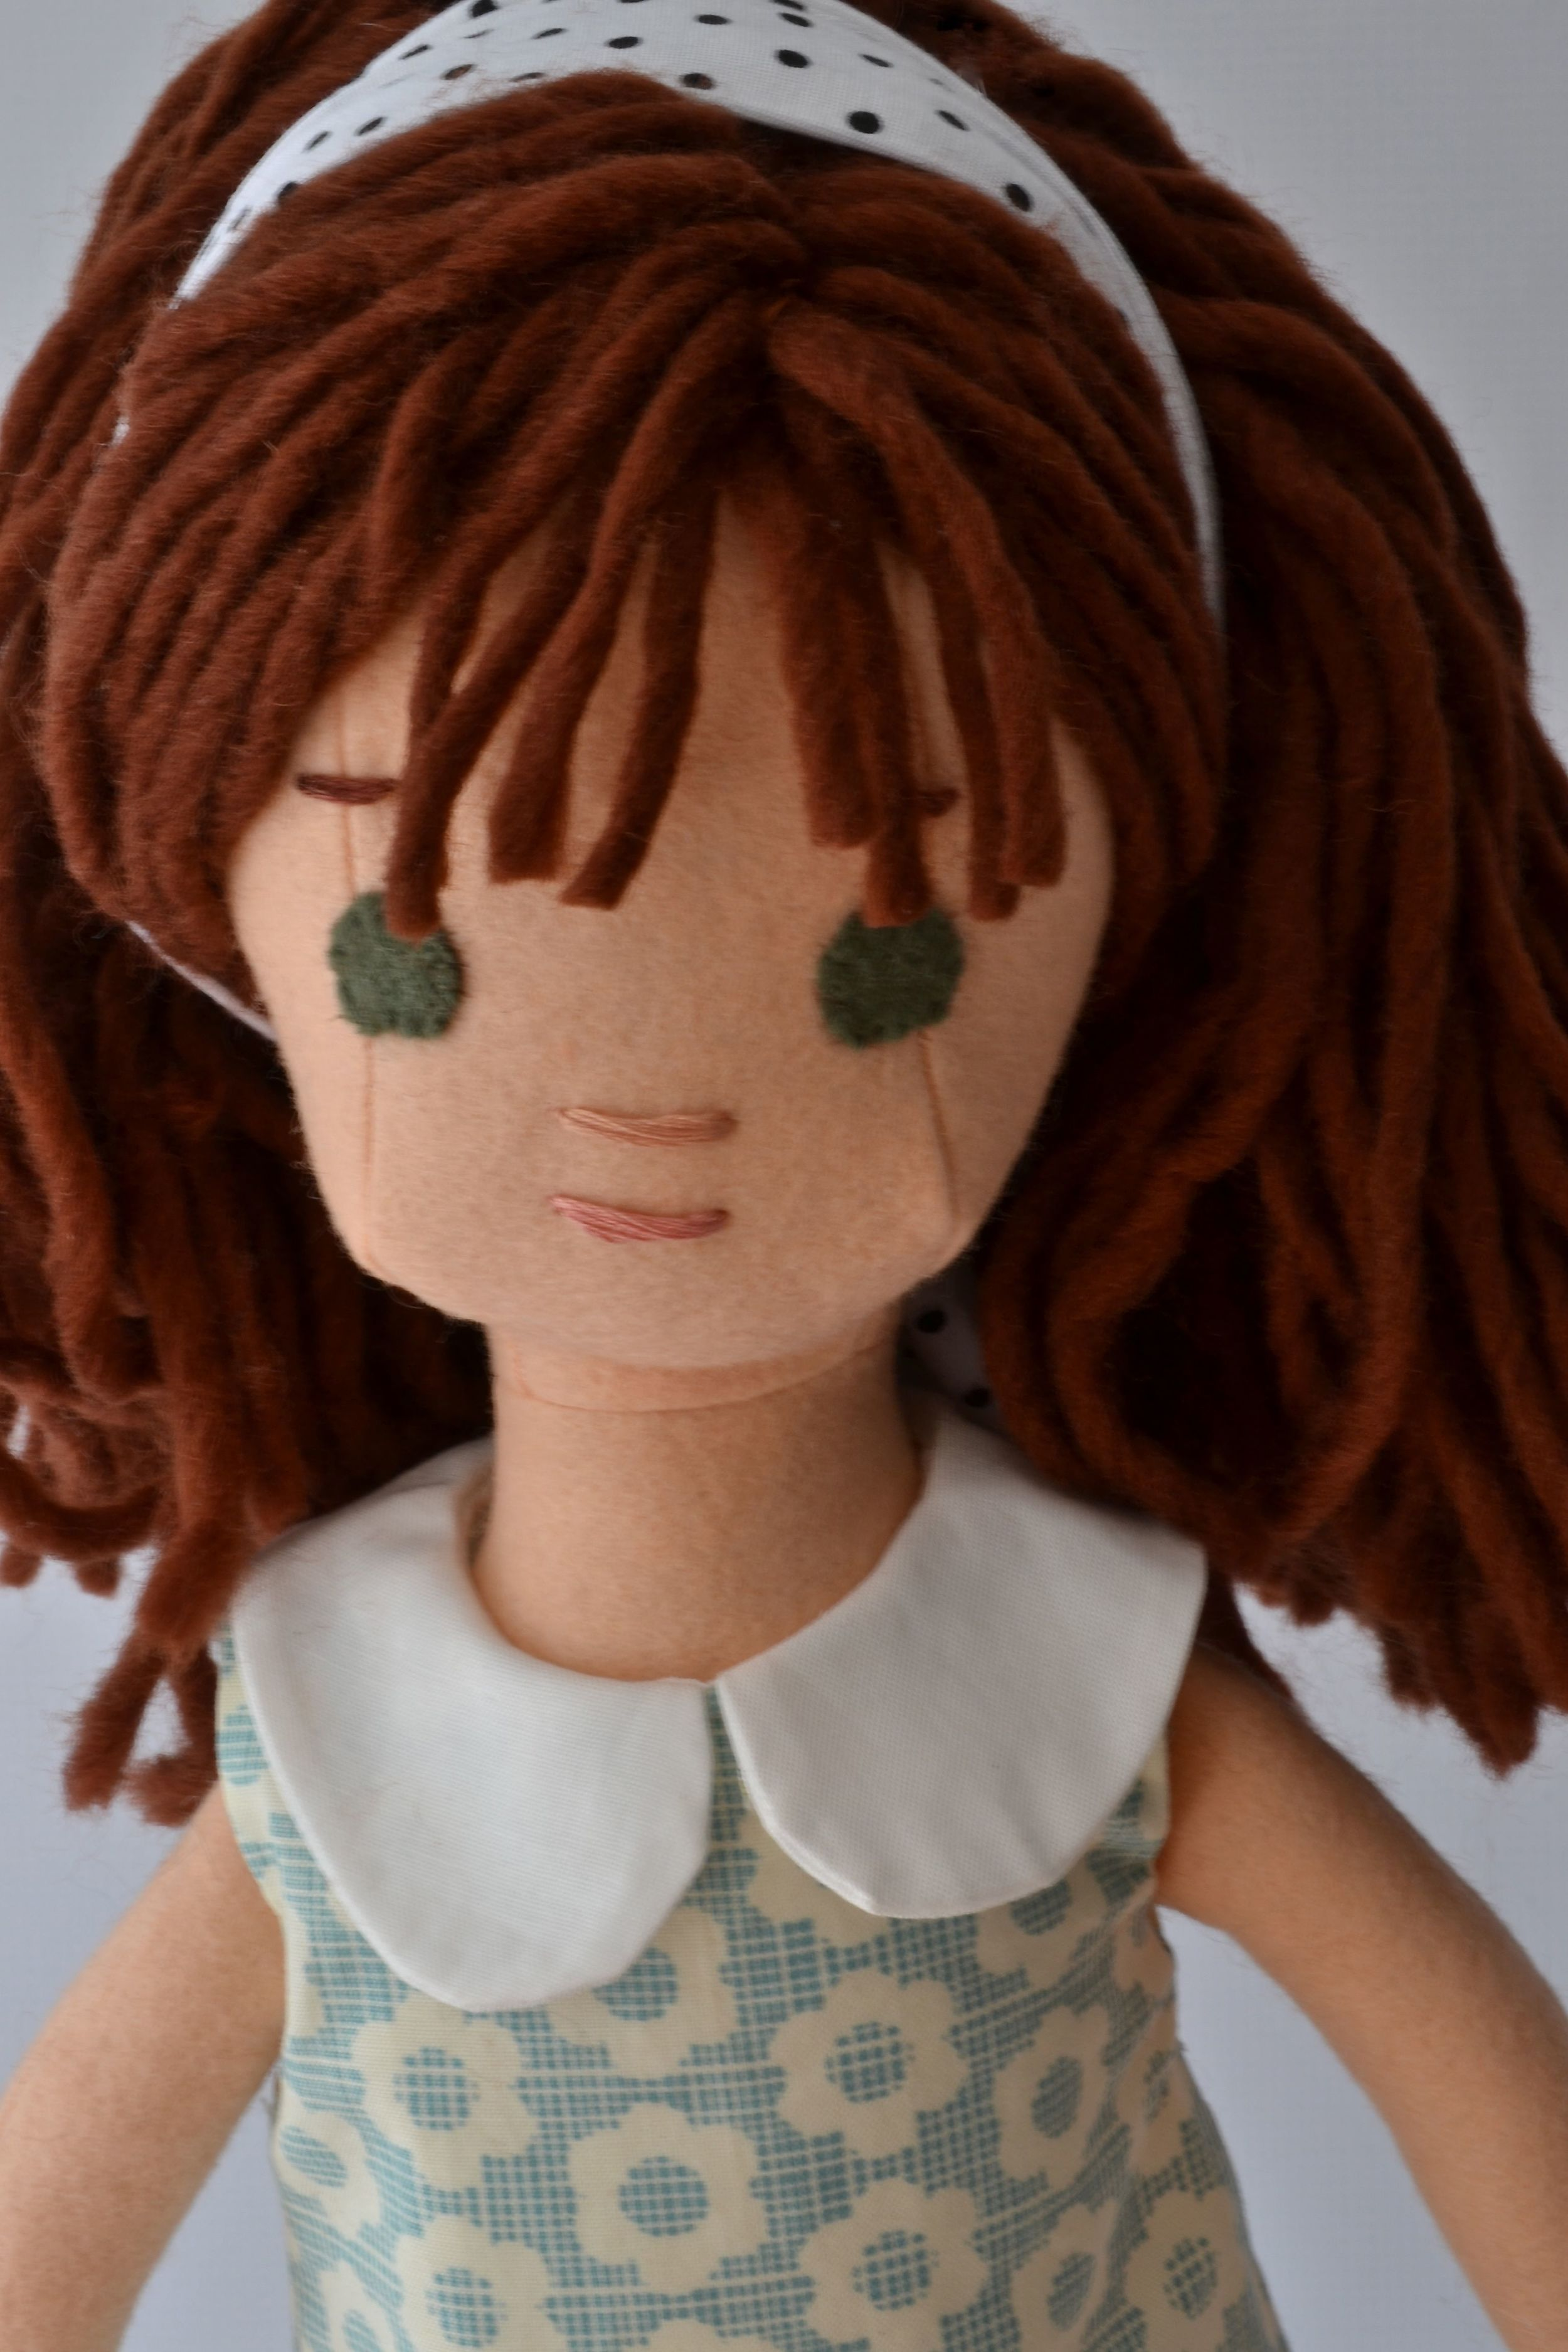 New doll rocking the bangs